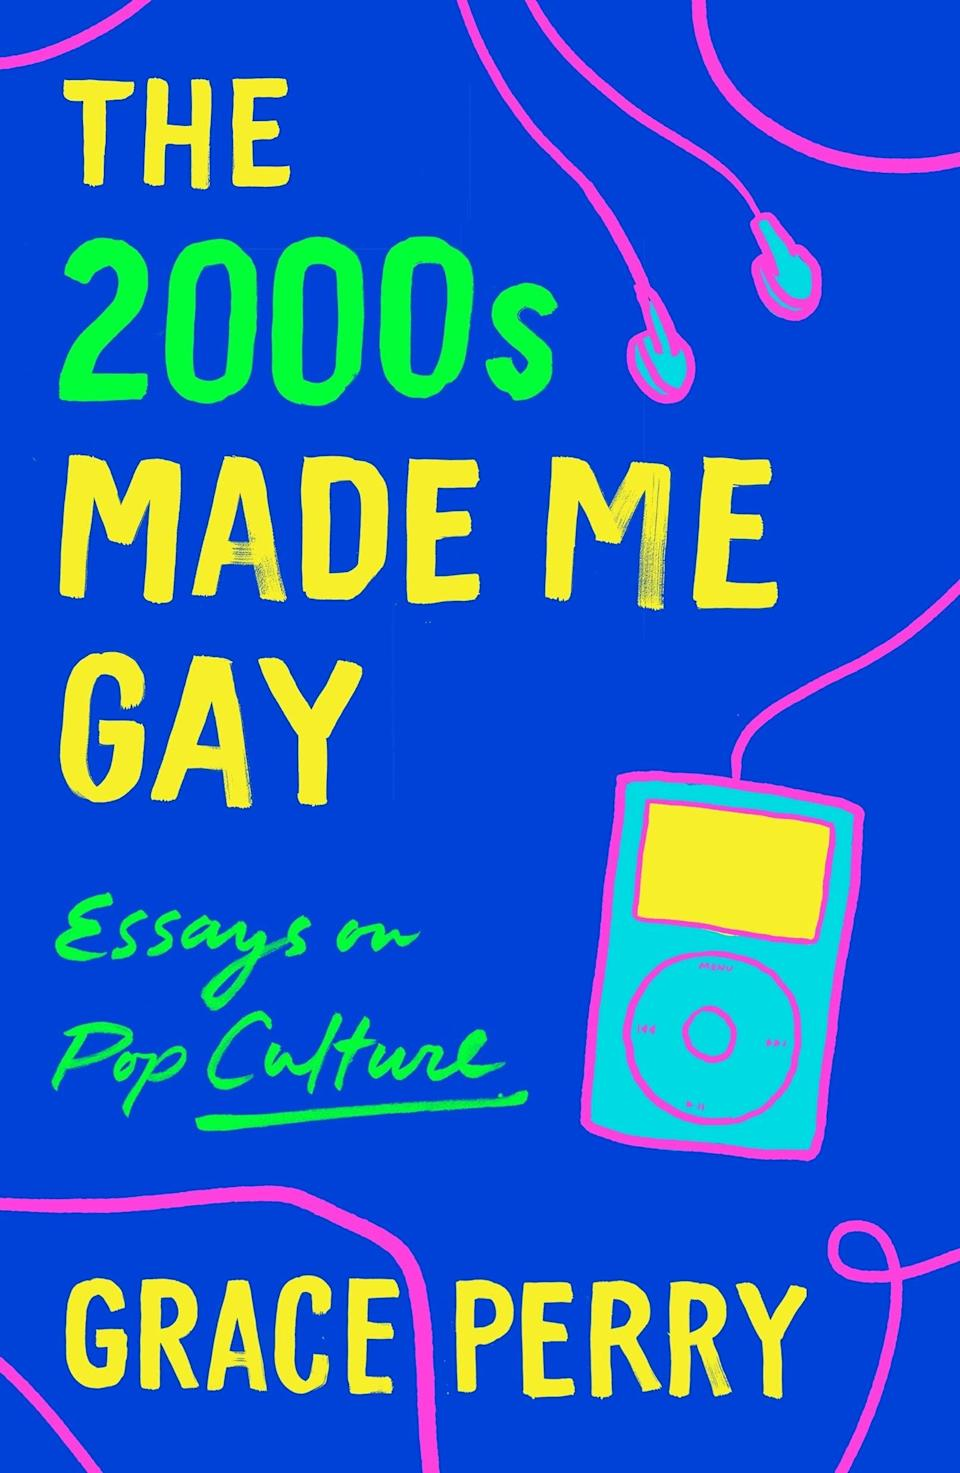 """<p>Grace Perry's <span><strong>The 2000s Made Me Gay</strong></span> will instantly transport you back to the aughts via all of the most unforgettable pop culture moments from the decade, including the premiere of <strong><a class=""""link rapid-noclick-resp"""" href=""""https://www.popsugar.com/Gossip-Girl"""" rel=""""nofollow noopener"""" target=""""_blank"""" data-ylk=""""slk:Gossip Girl"""">Gossip Girl</a></strong> and the rise and fall of <a class=""""link rapid-noclick-resp"""" href=""""https://www.popsugar.com/Lindsay-Lohan"""" rel=""""nofollow noopener"""" target=""""_blank"""" data-ylk=""""slk:Lindsay Lohan"""">Lindsay Lohan</a>. Through a series of hilarious and insightful essays, Perry shares how the pop culture of her teen years helped her come out and become the witty writer she is today. </p> <p><em>Out June 1</em></p>"""